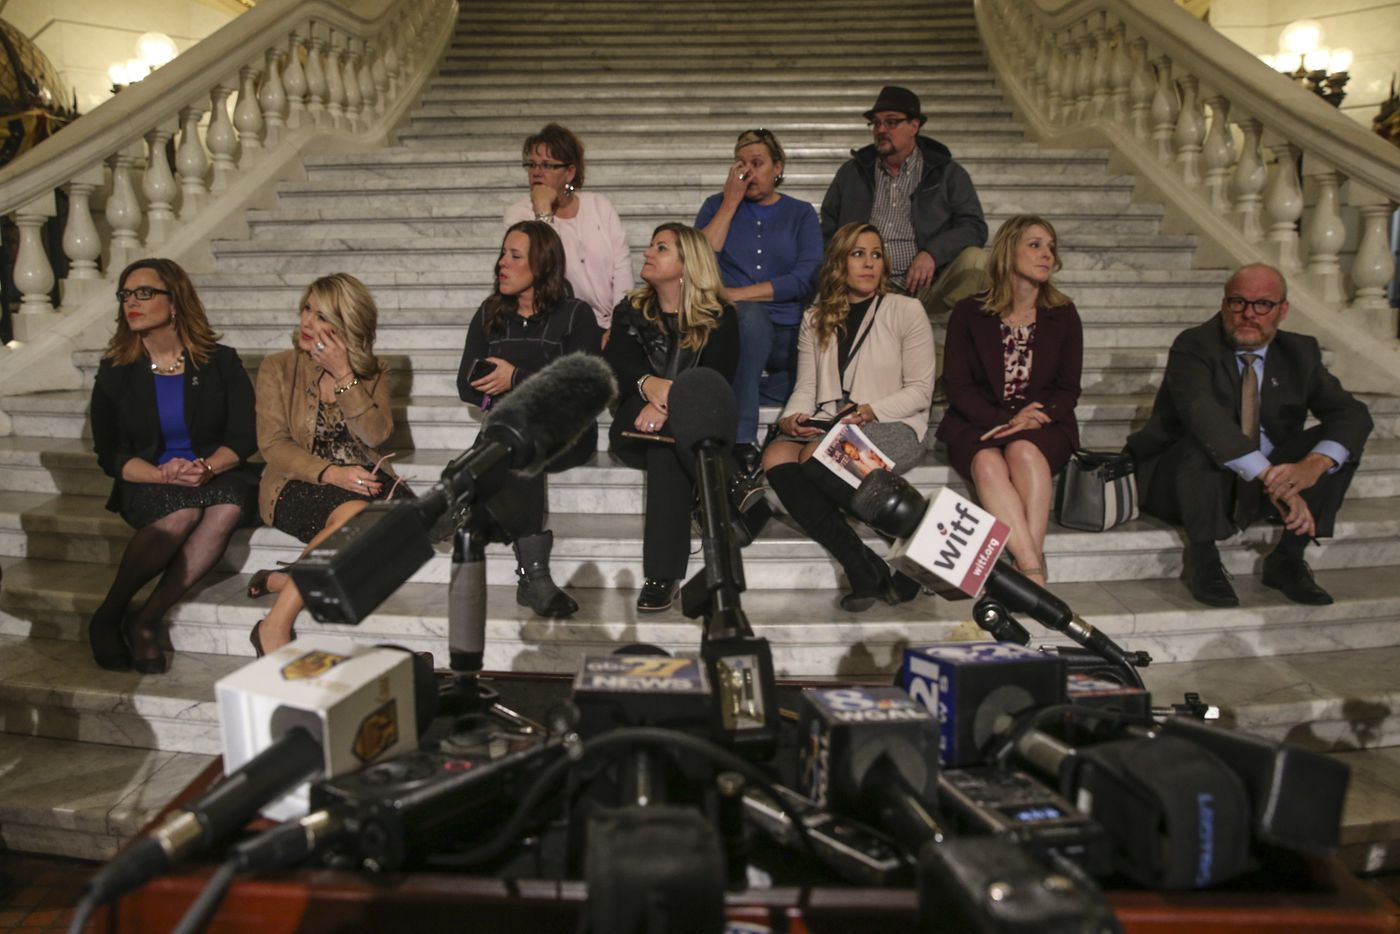 After a clergy-abuse bill collapsed in the Pennsylvania Senate late Wednesday night, victims gathered in the Capitol rotunda awaiting the arrival of Pennsylvania Attorney General Josh Shapiro.